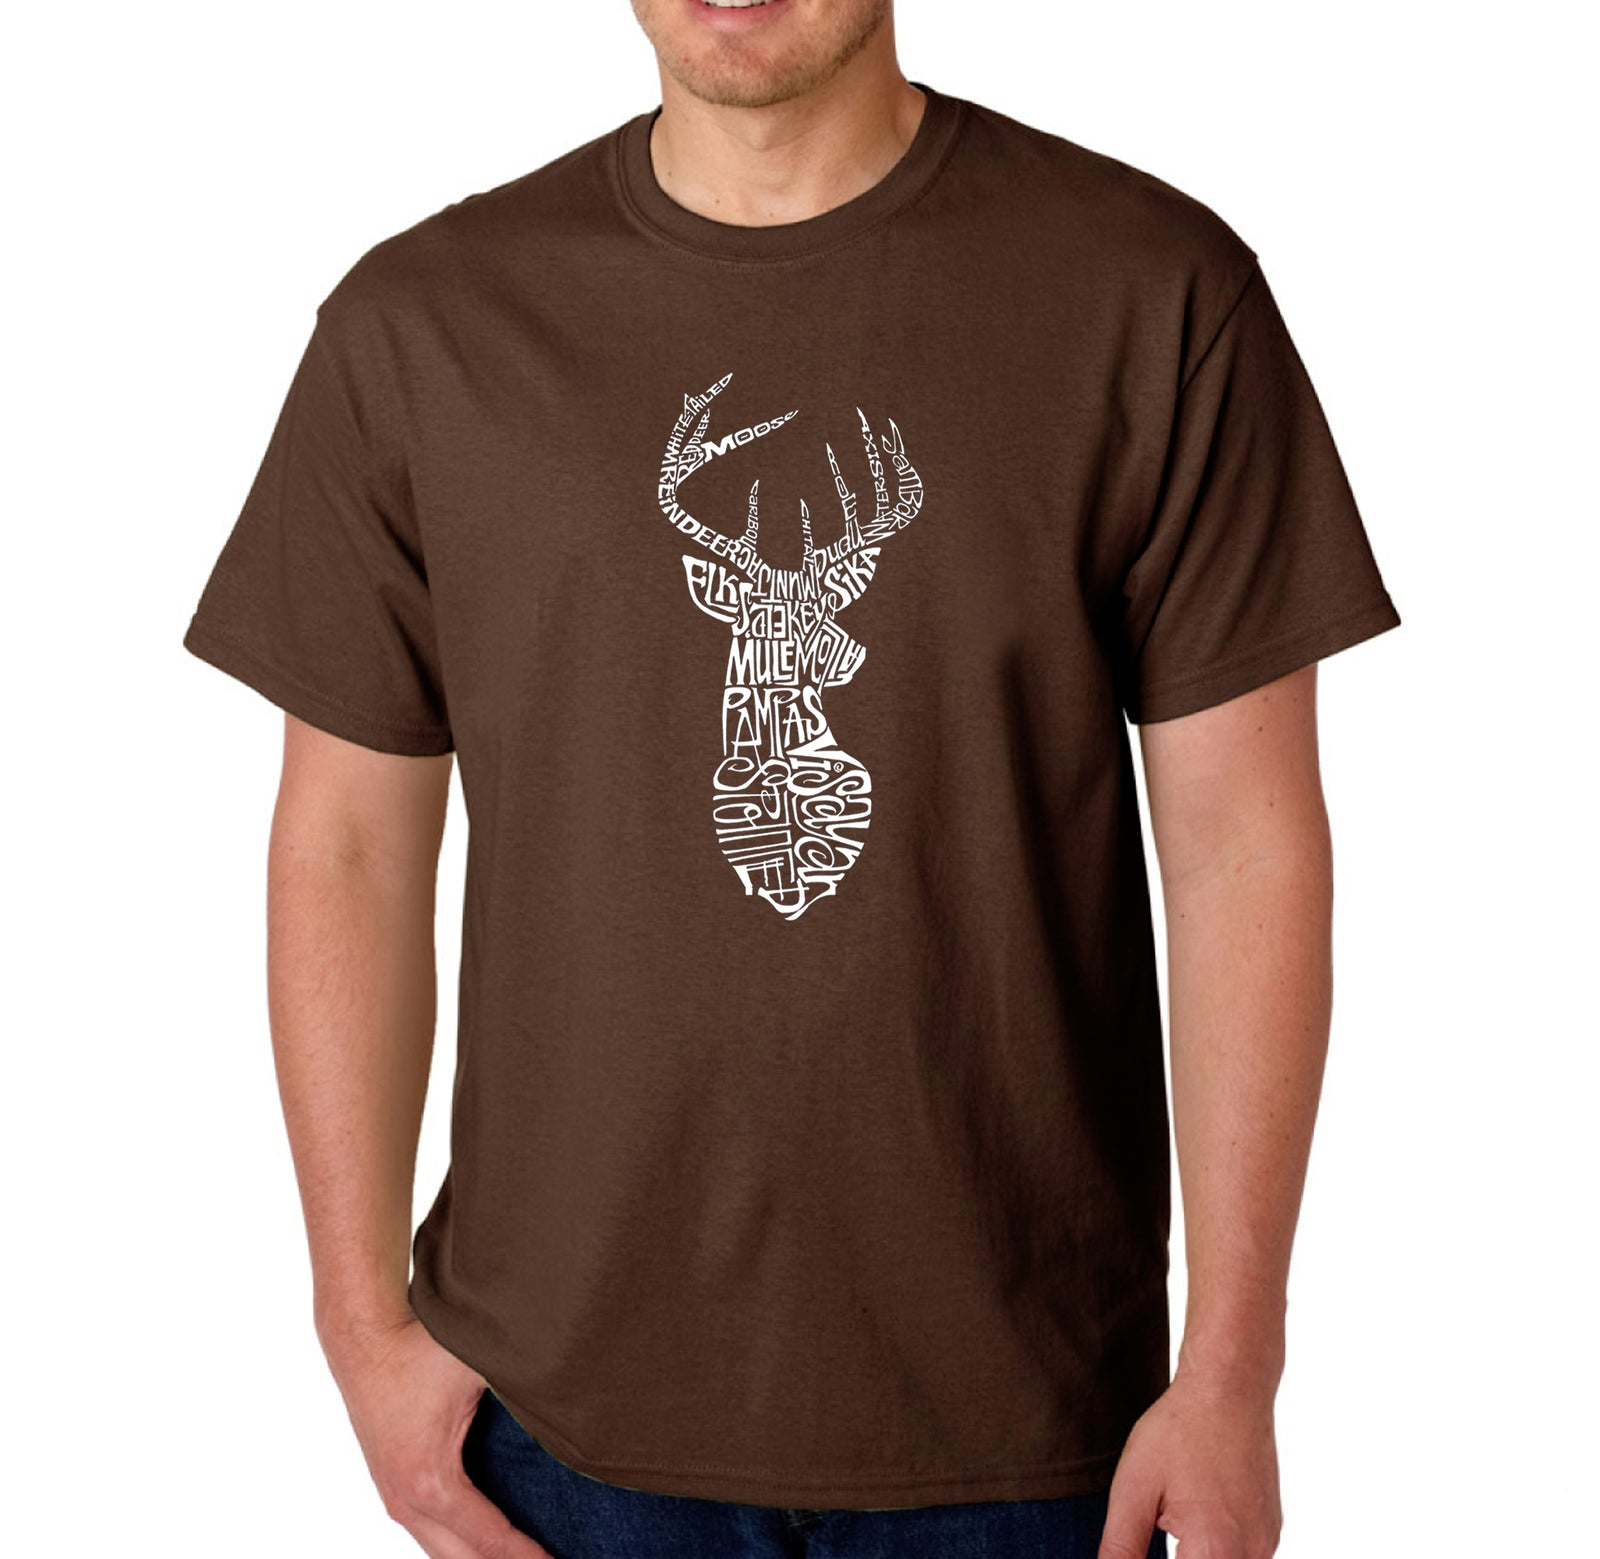 Men's T-shirt - Types of Deer